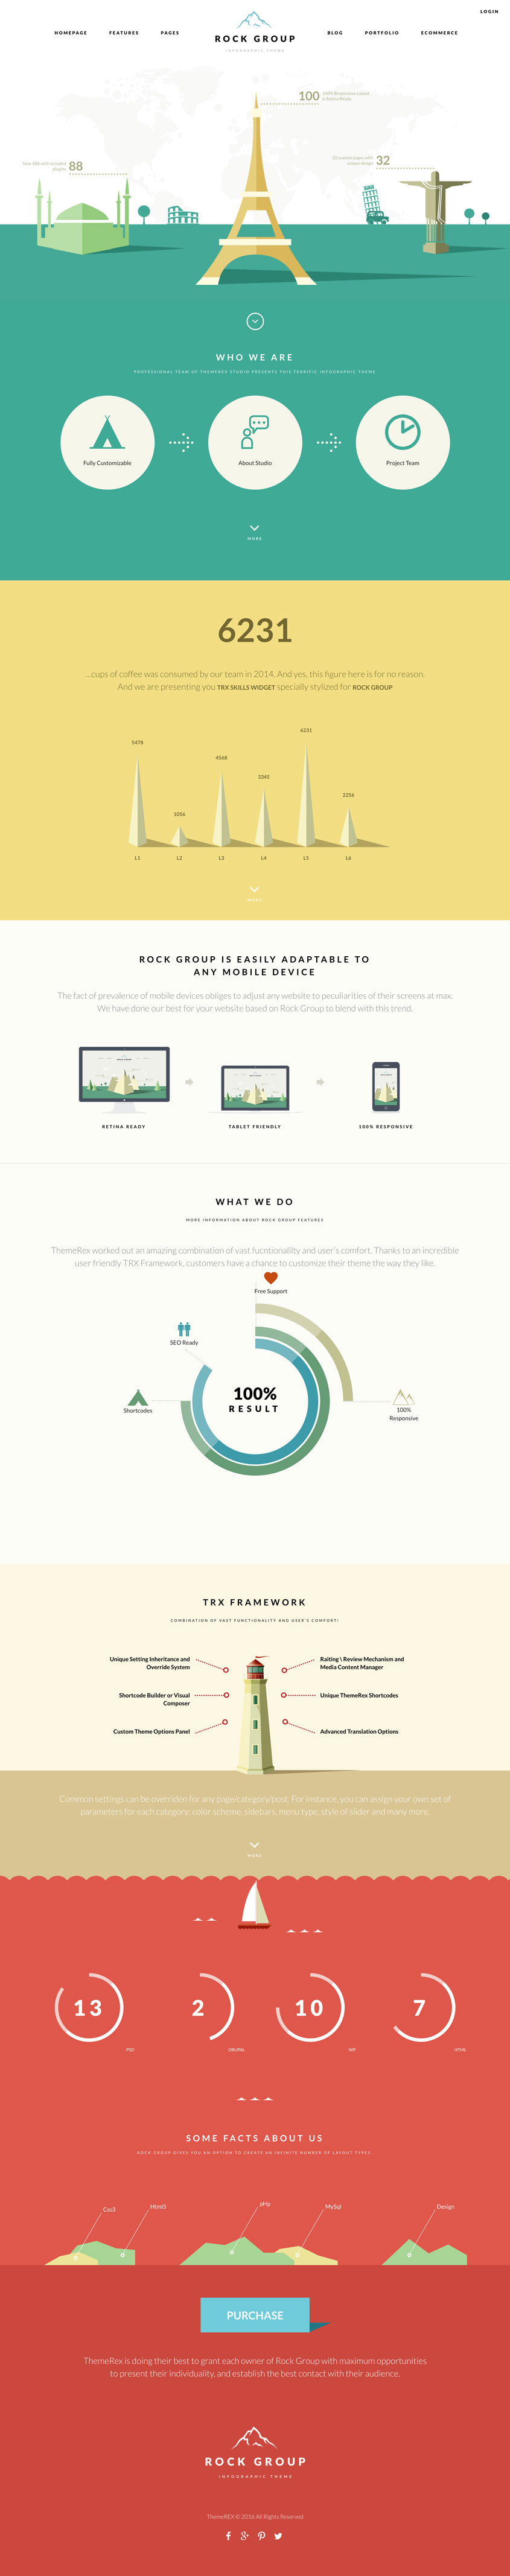 What Is White Space In Web Design How To Use It And Examples Tim B Design Web Design Inspiration Web Design Web Layout Design